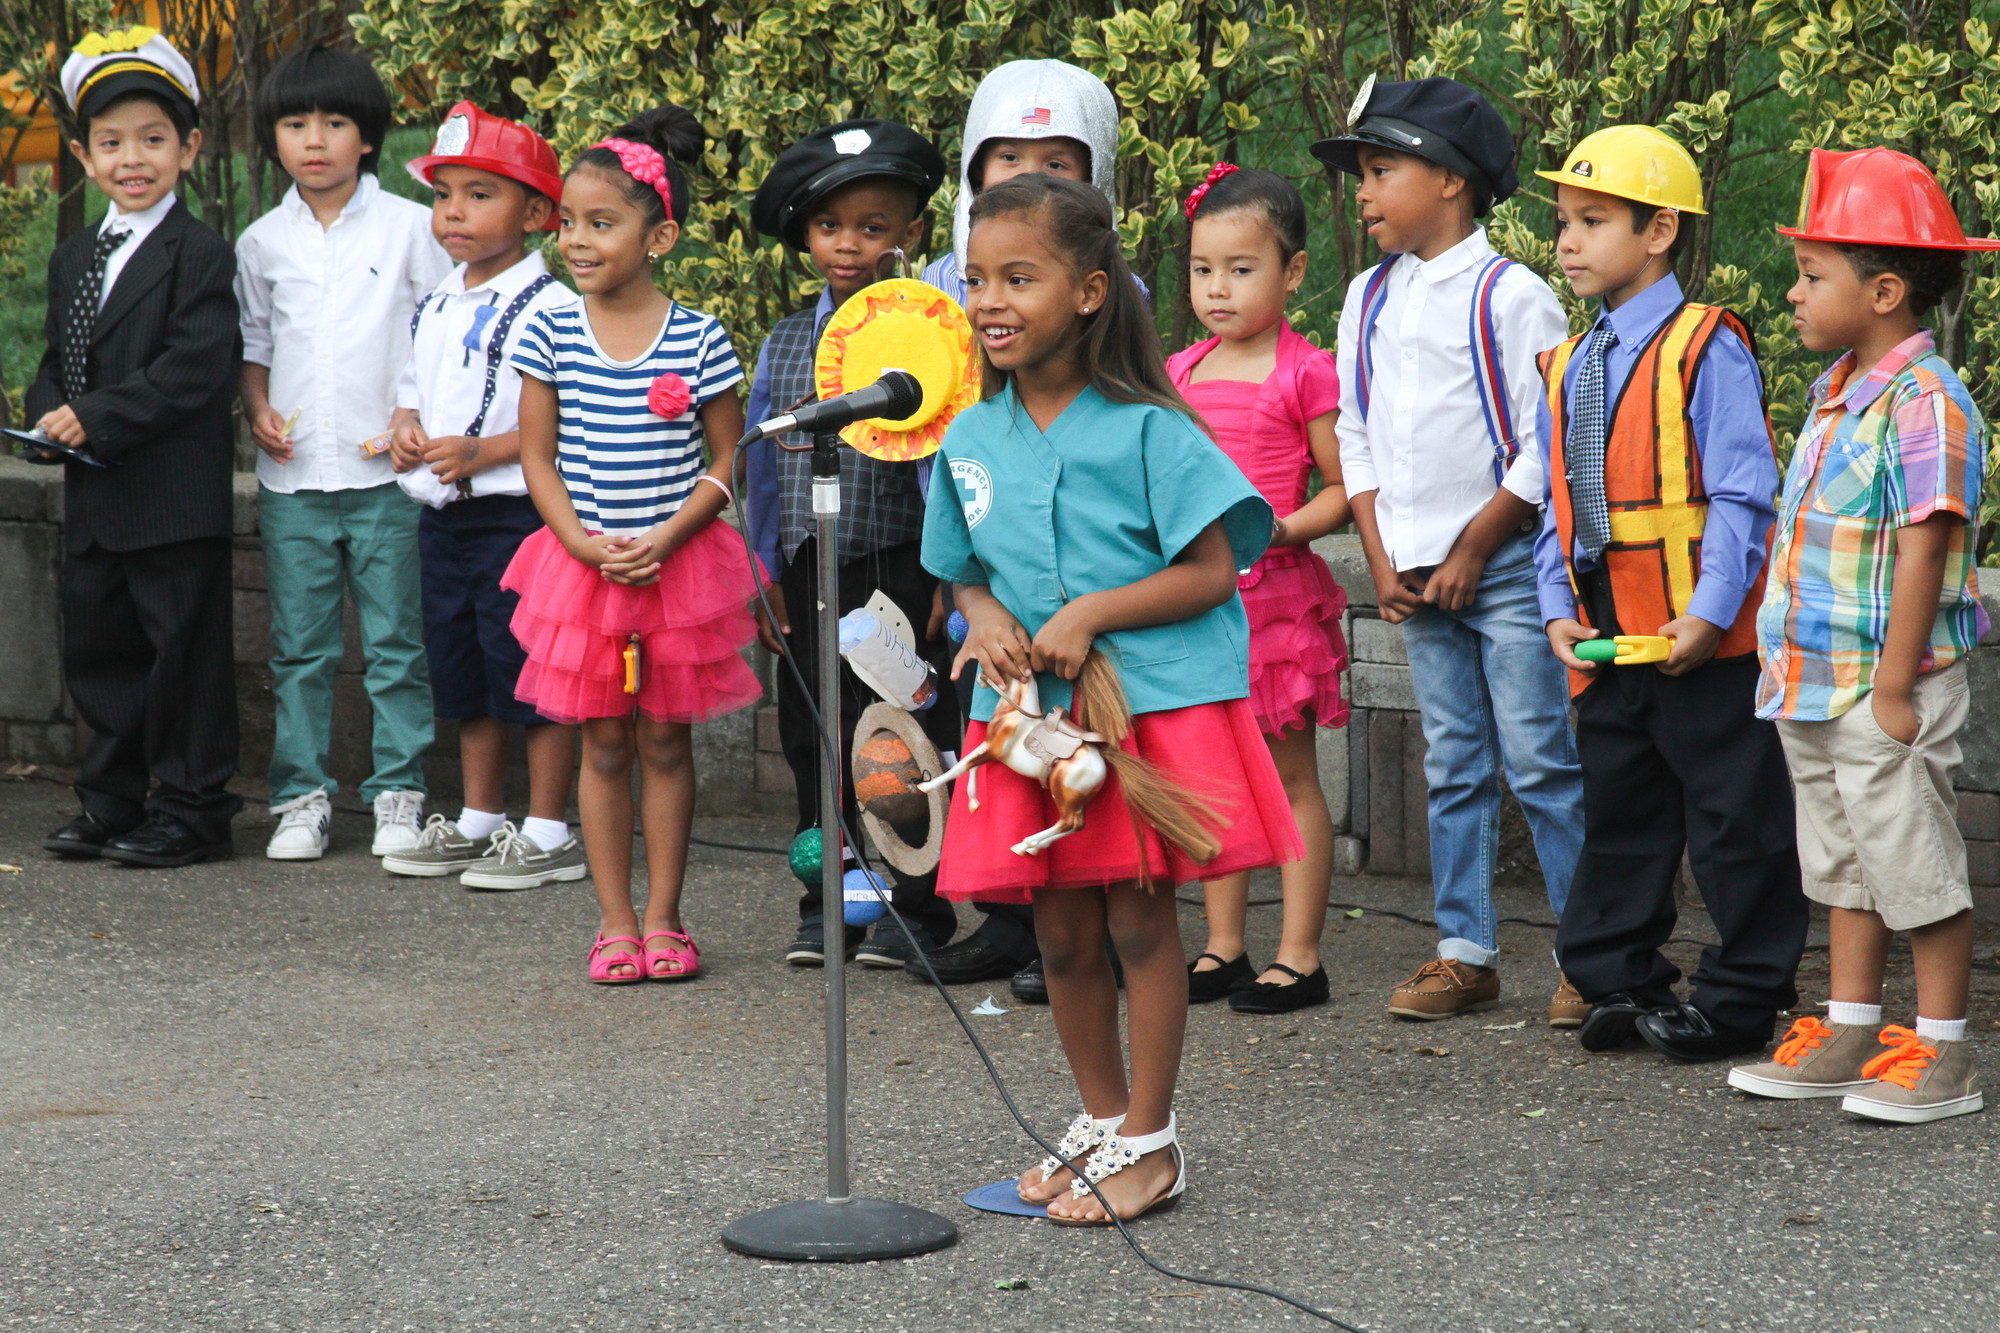 Each learning center graduate told frieds and family what they wanted to be when they grow up. From left were  Jonathan Monroy, Christian Pena, Justin Martinez, Mariah Silva, Eddie Smith, Carlos Morales, Melanie Vasquez, Joel Rodriquez, Andy Herrarte, Justin Valiente and Mia Rodriquez, at the microphone.